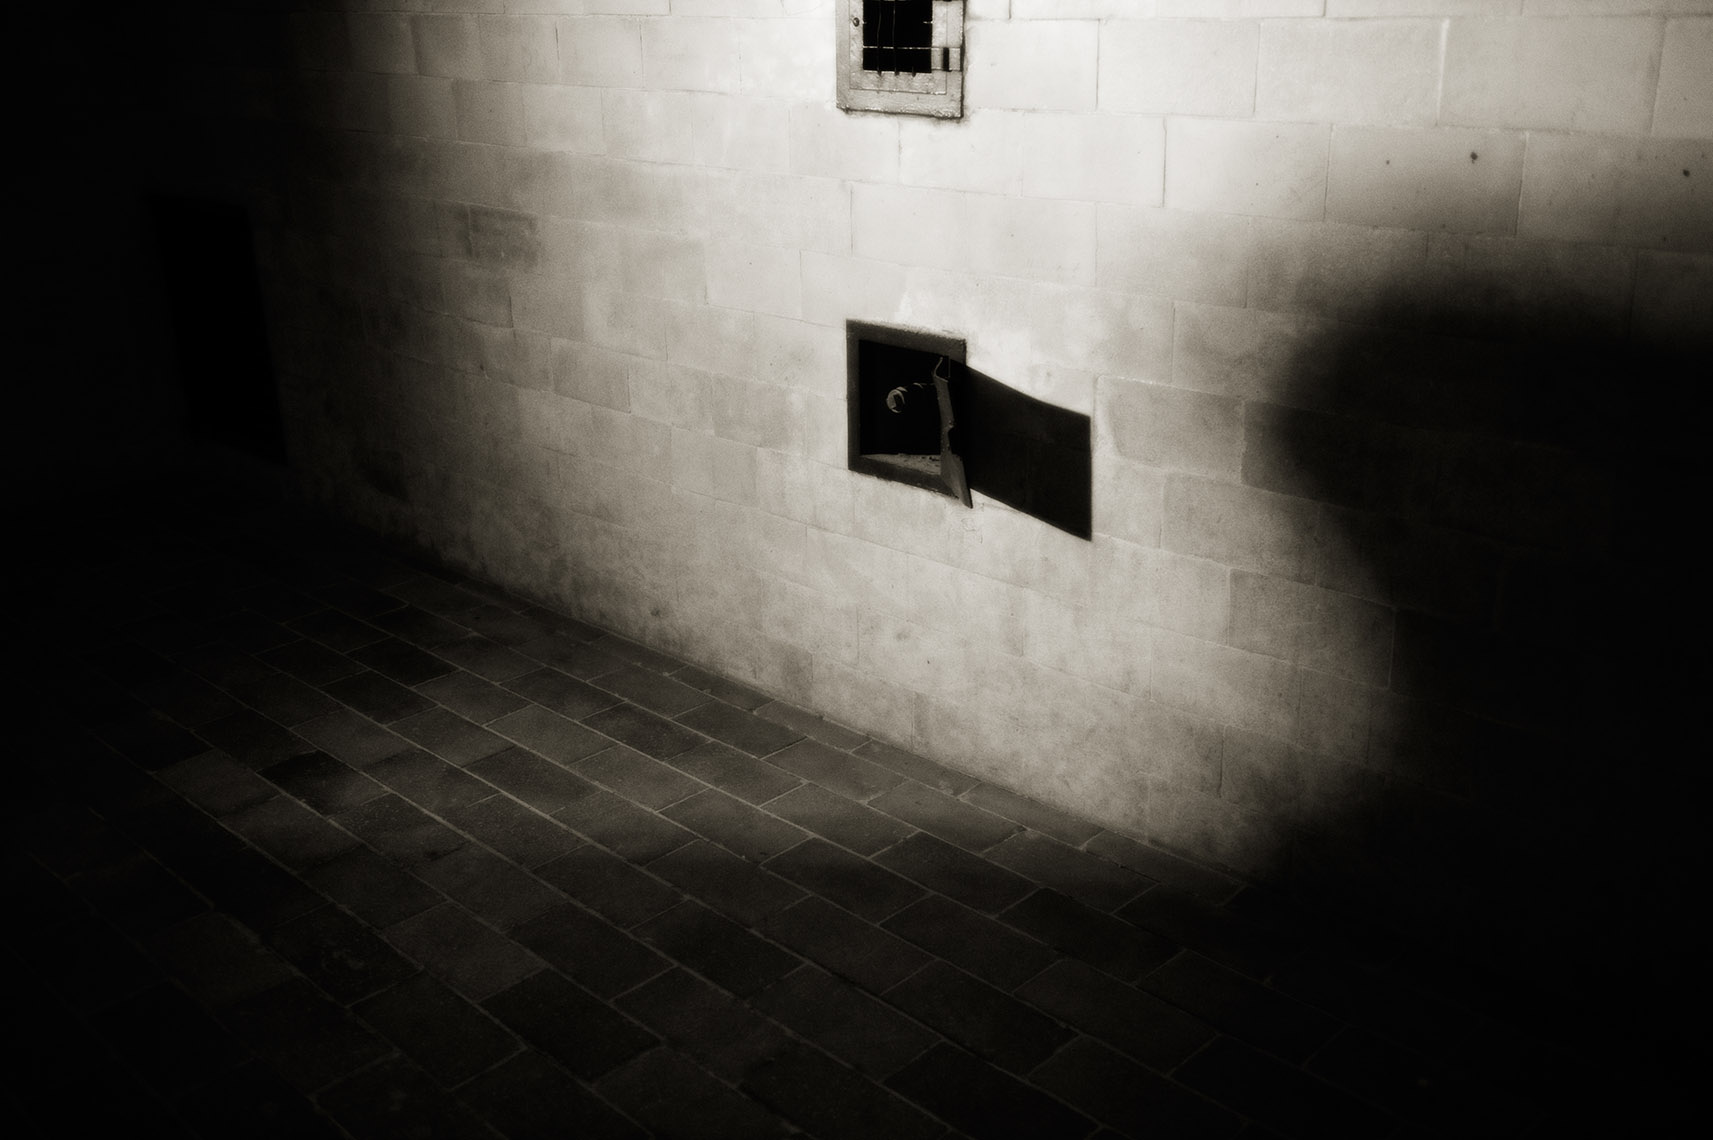 Gas Chambers | Washington DC Photographer Aaron Clamage